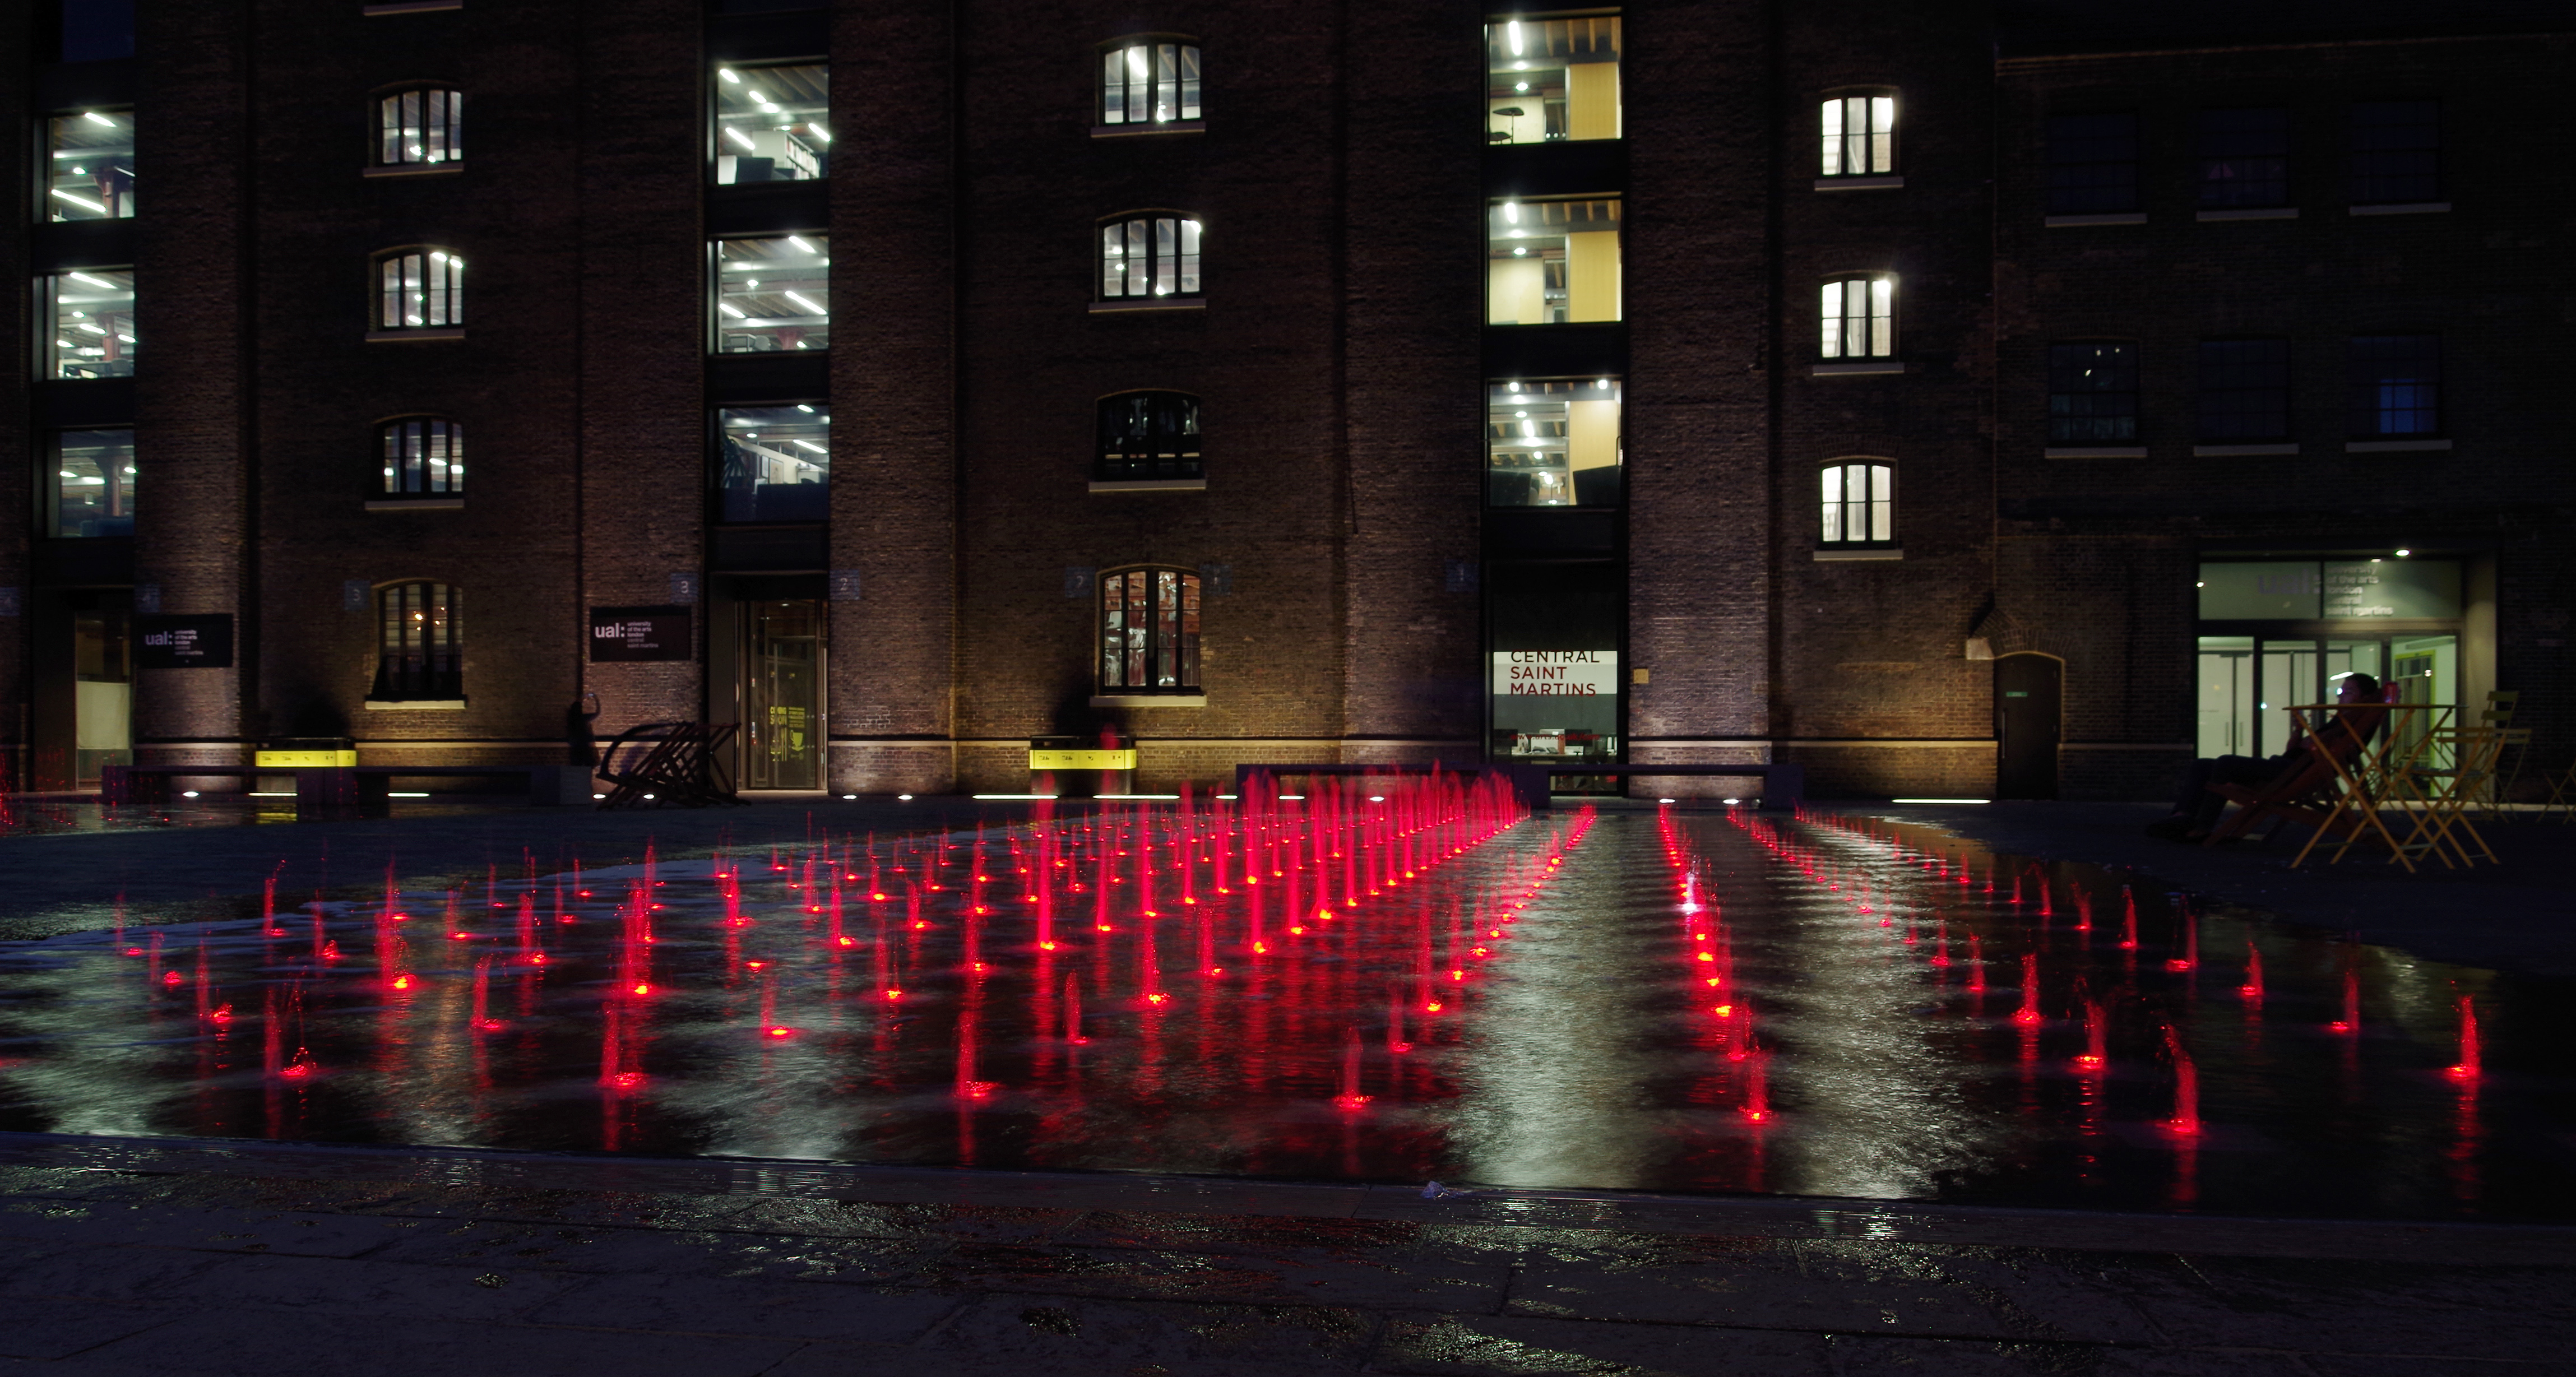 London Central Saint Martins College Of Art And Design